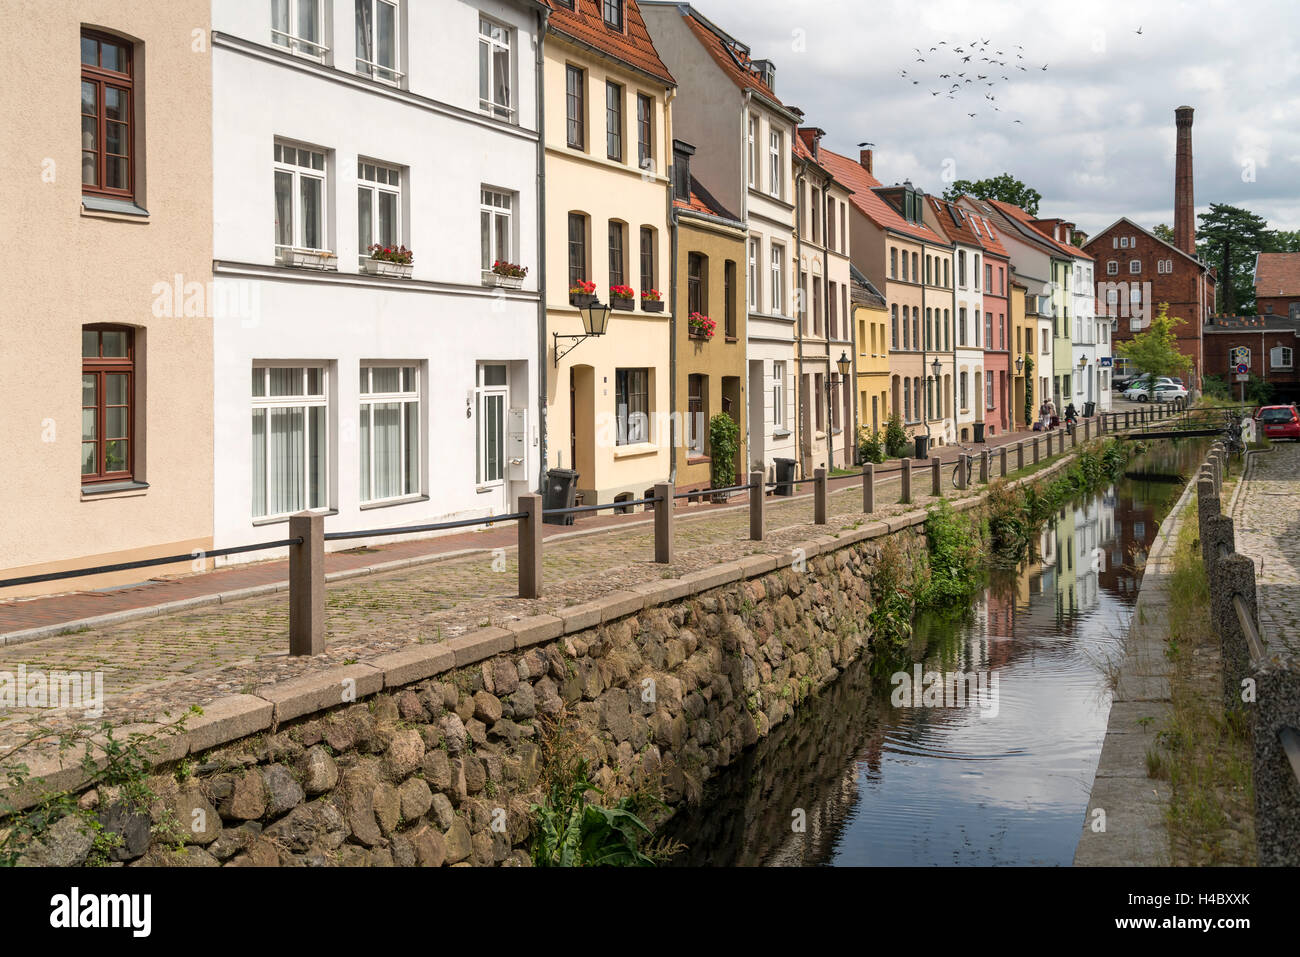 the Grube river or Mühlenbach,  historic old town, Hanseatic City of Wismar, Mecklenburg-Vorpommern, Germany - Stock Image